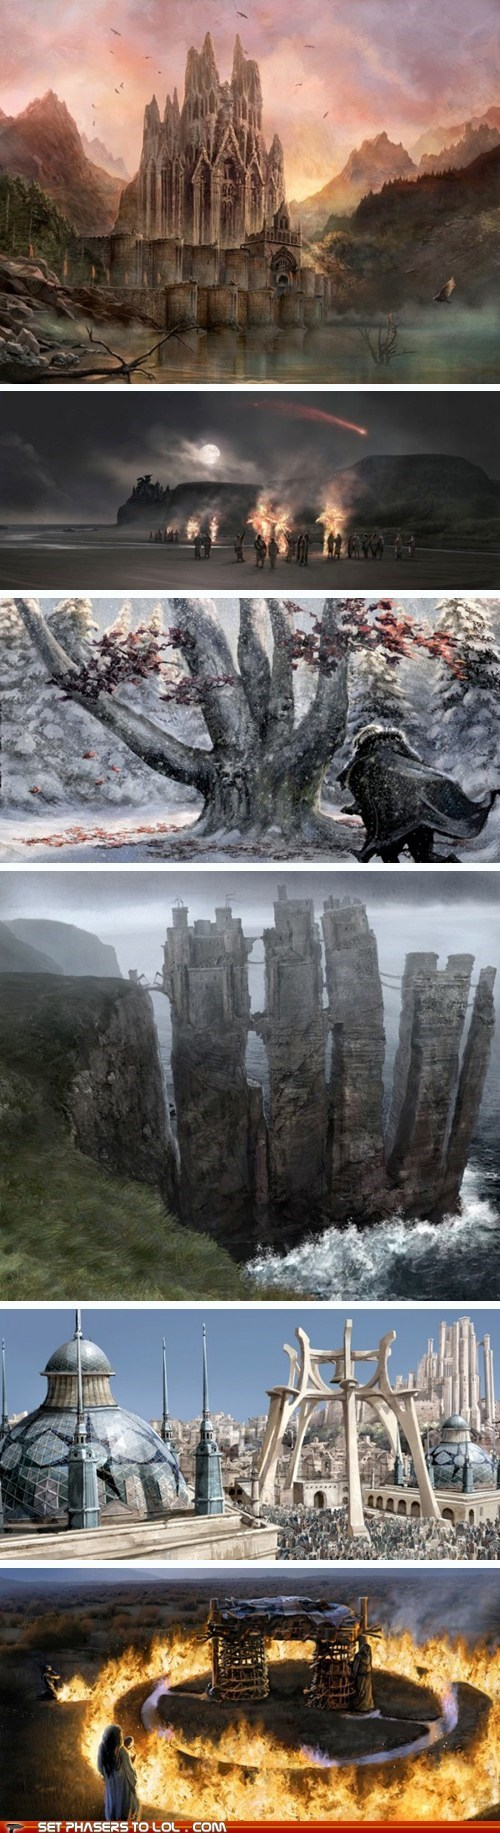 a song of ice and fire beautiful concept art Game of Thrones hbo Westeros - 6166009344